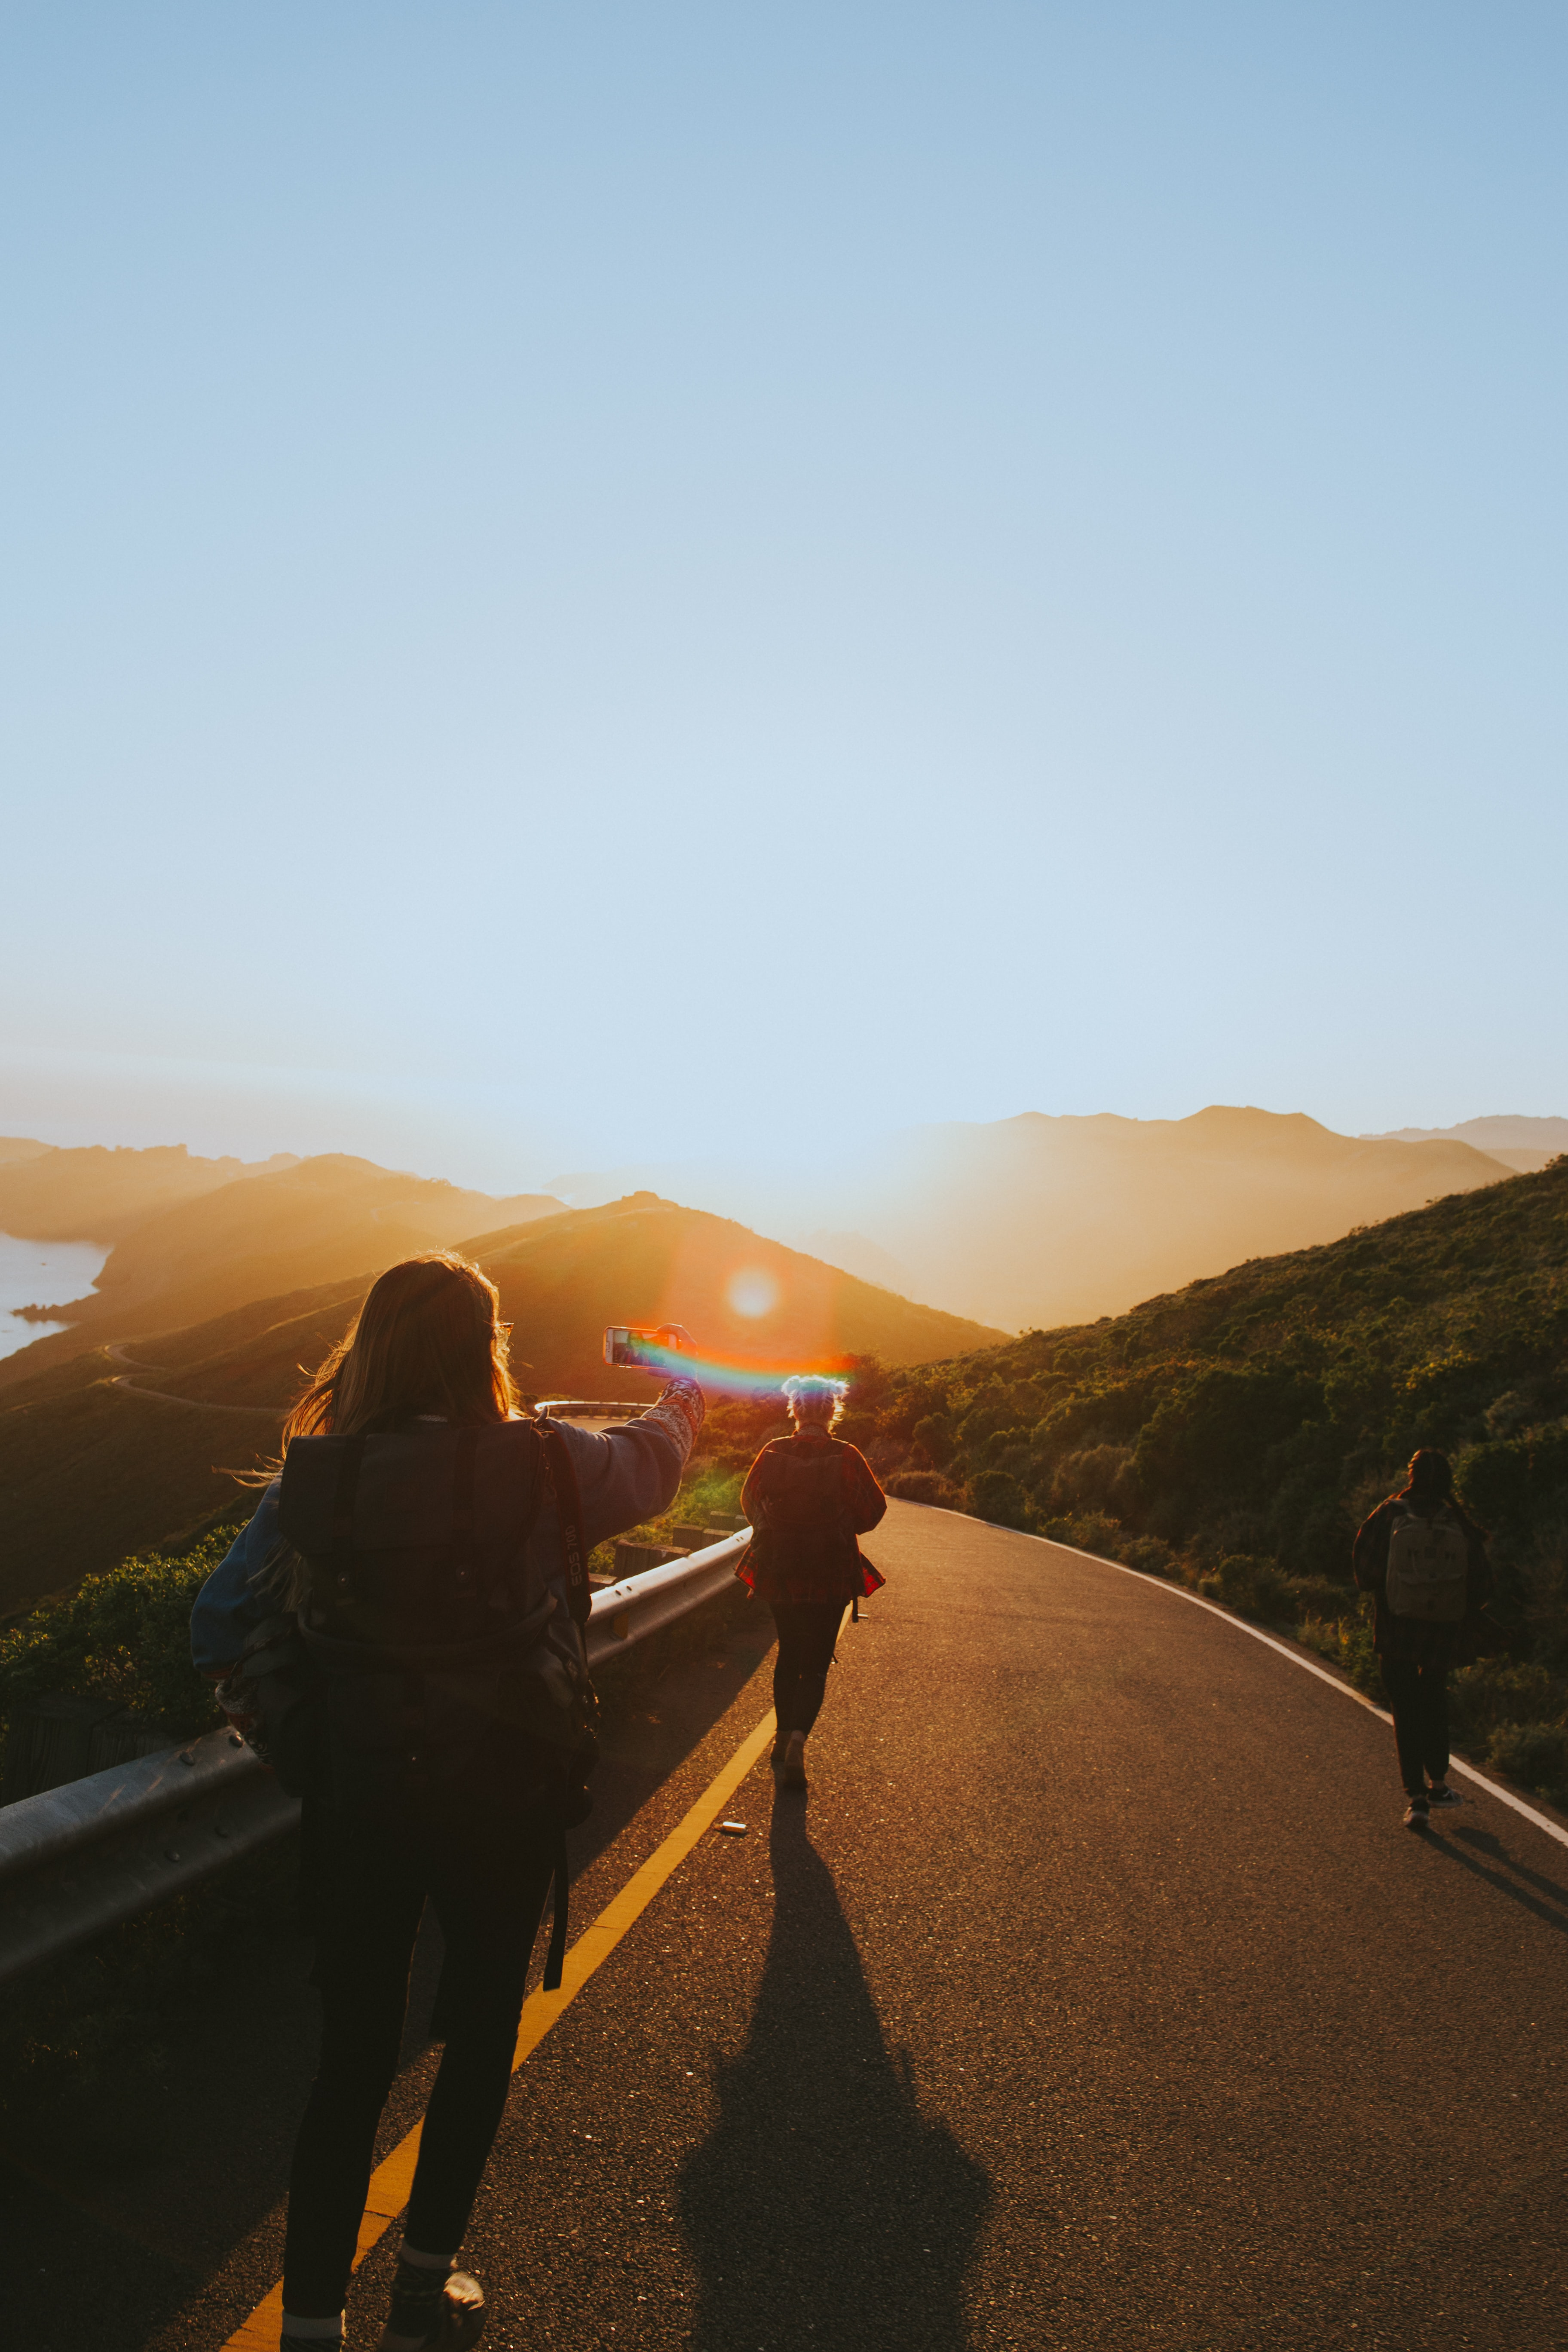 People walking down a hill while one of them takes a selfie on their cellphone during sunset